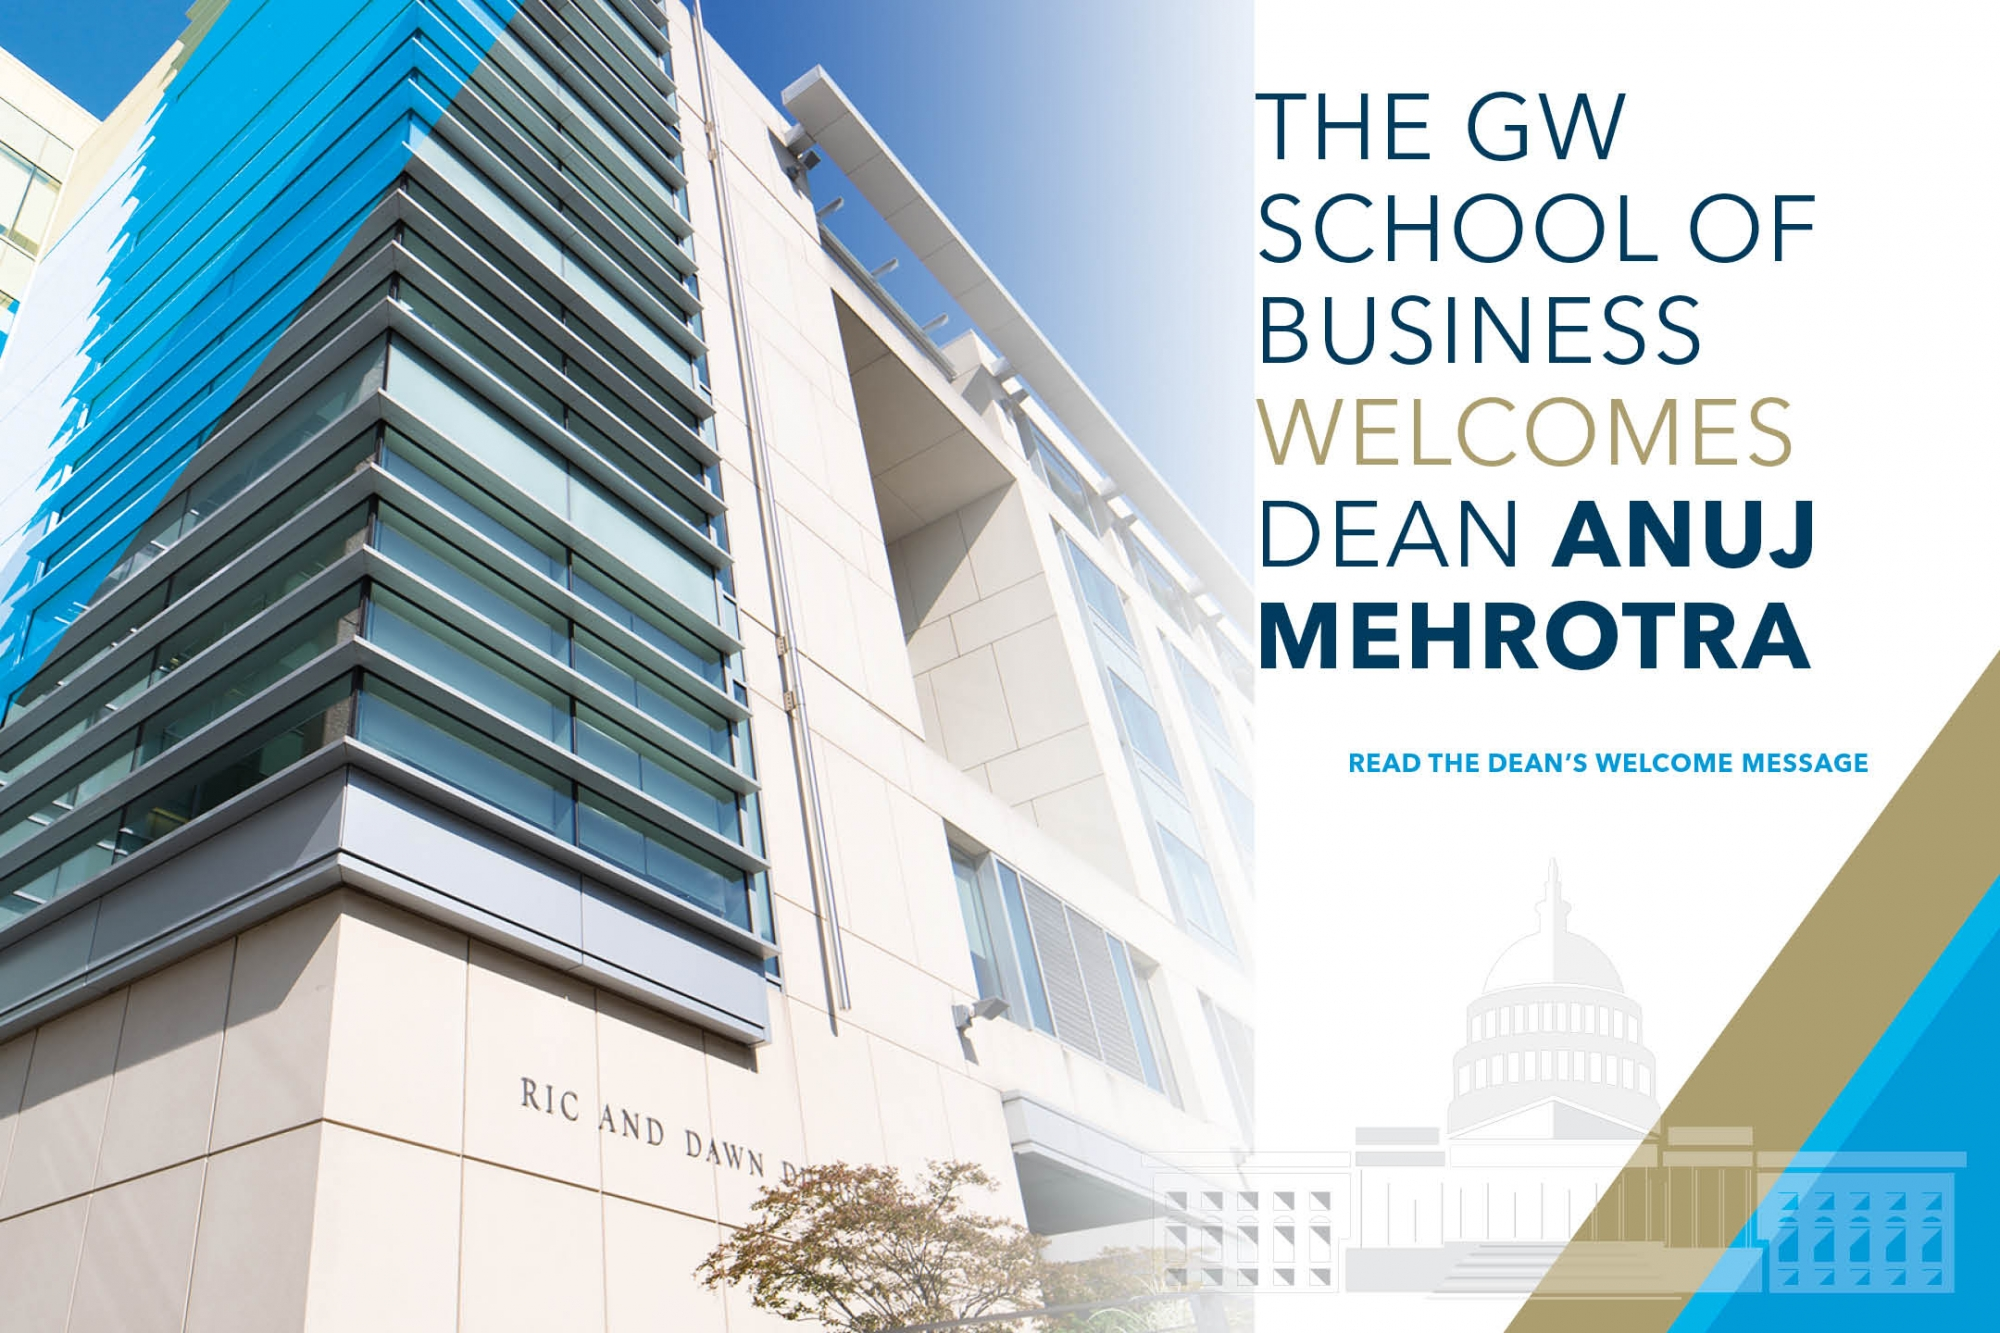 photo - The GW School of Business Welcomes Dean Anuj Mehrotra